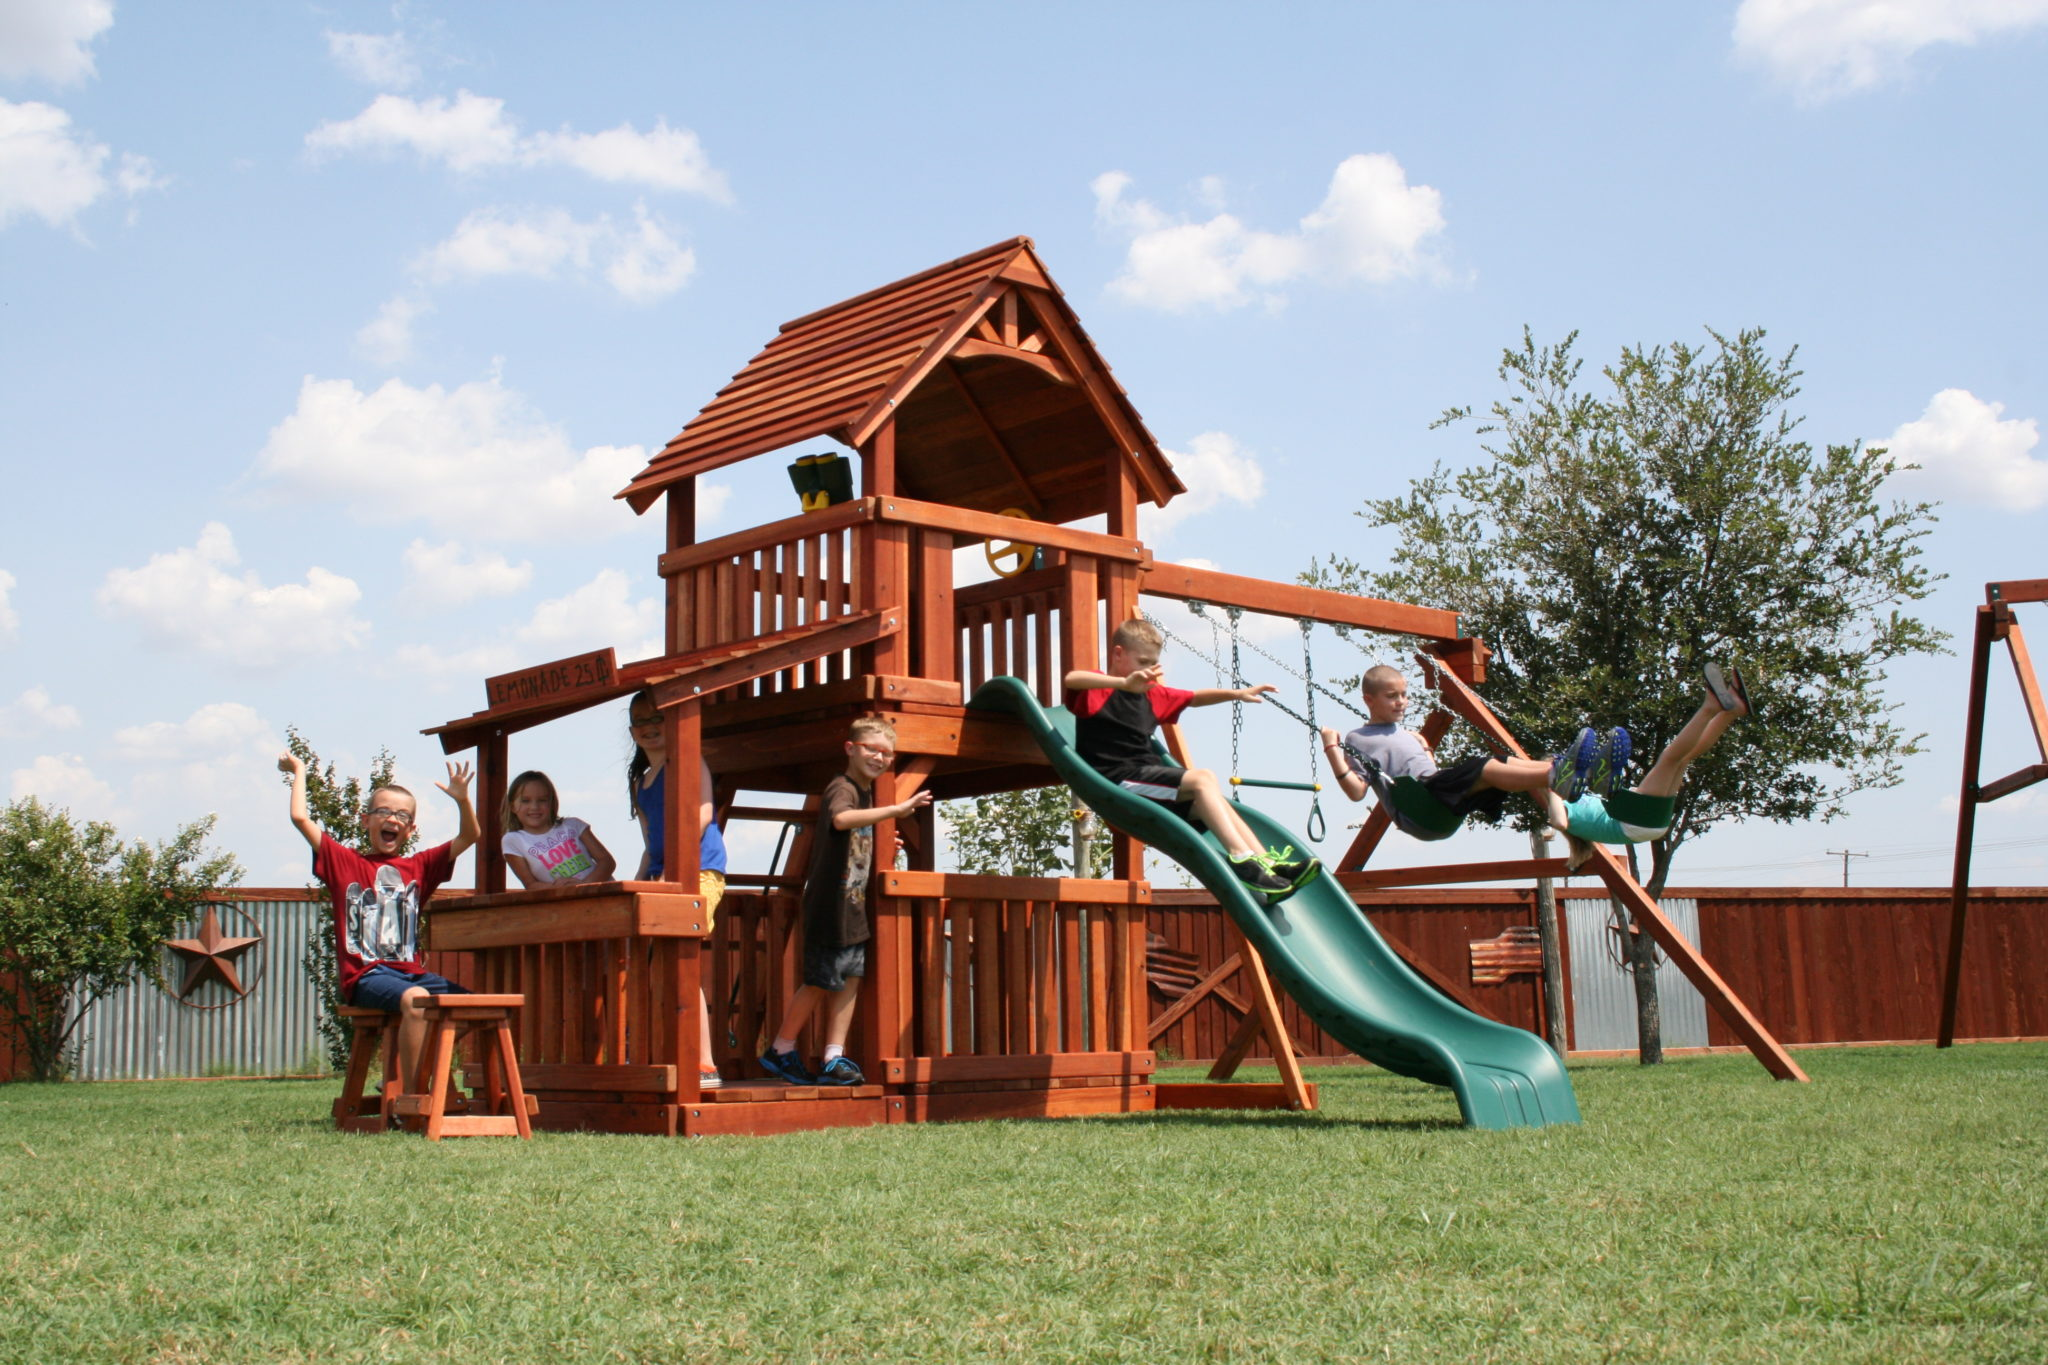 Playset Backyard 28 Images Backyard Playset Backyard Pinterest Backyard Playset For The Mr